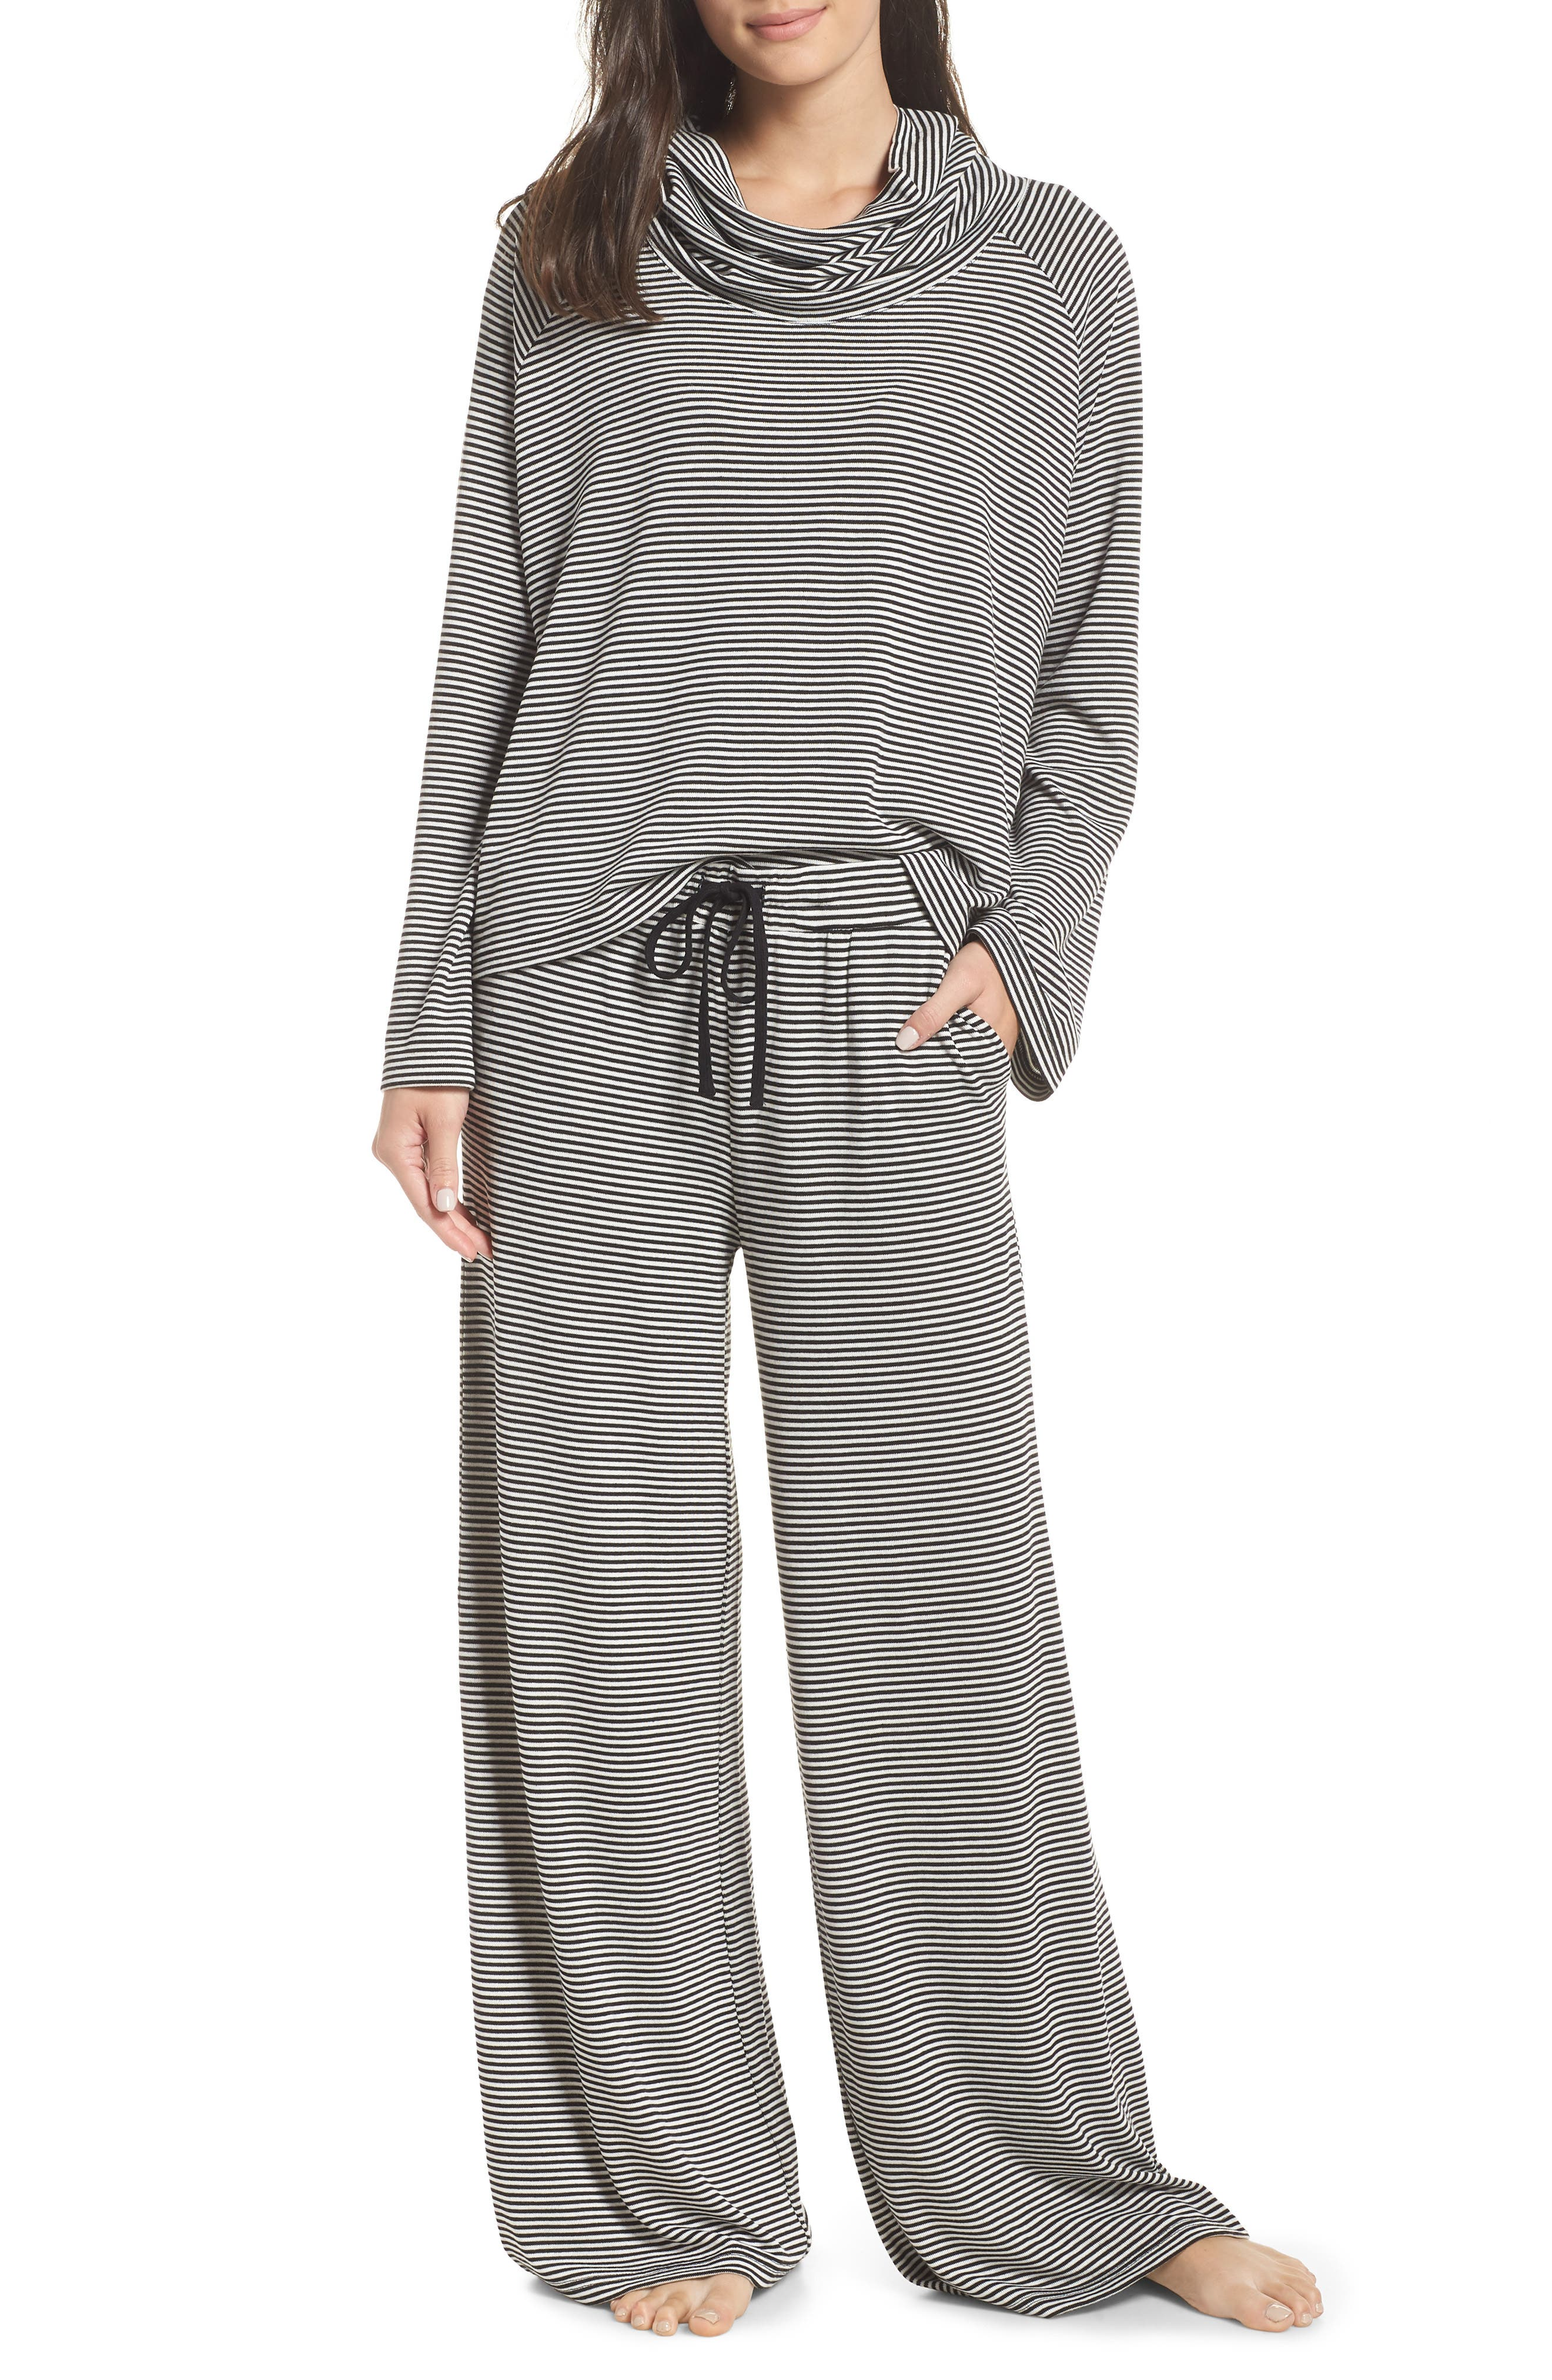 Easy Tiger Cowl Pajama Top,                             Alternate thumbnail 7, color,                             BLACK